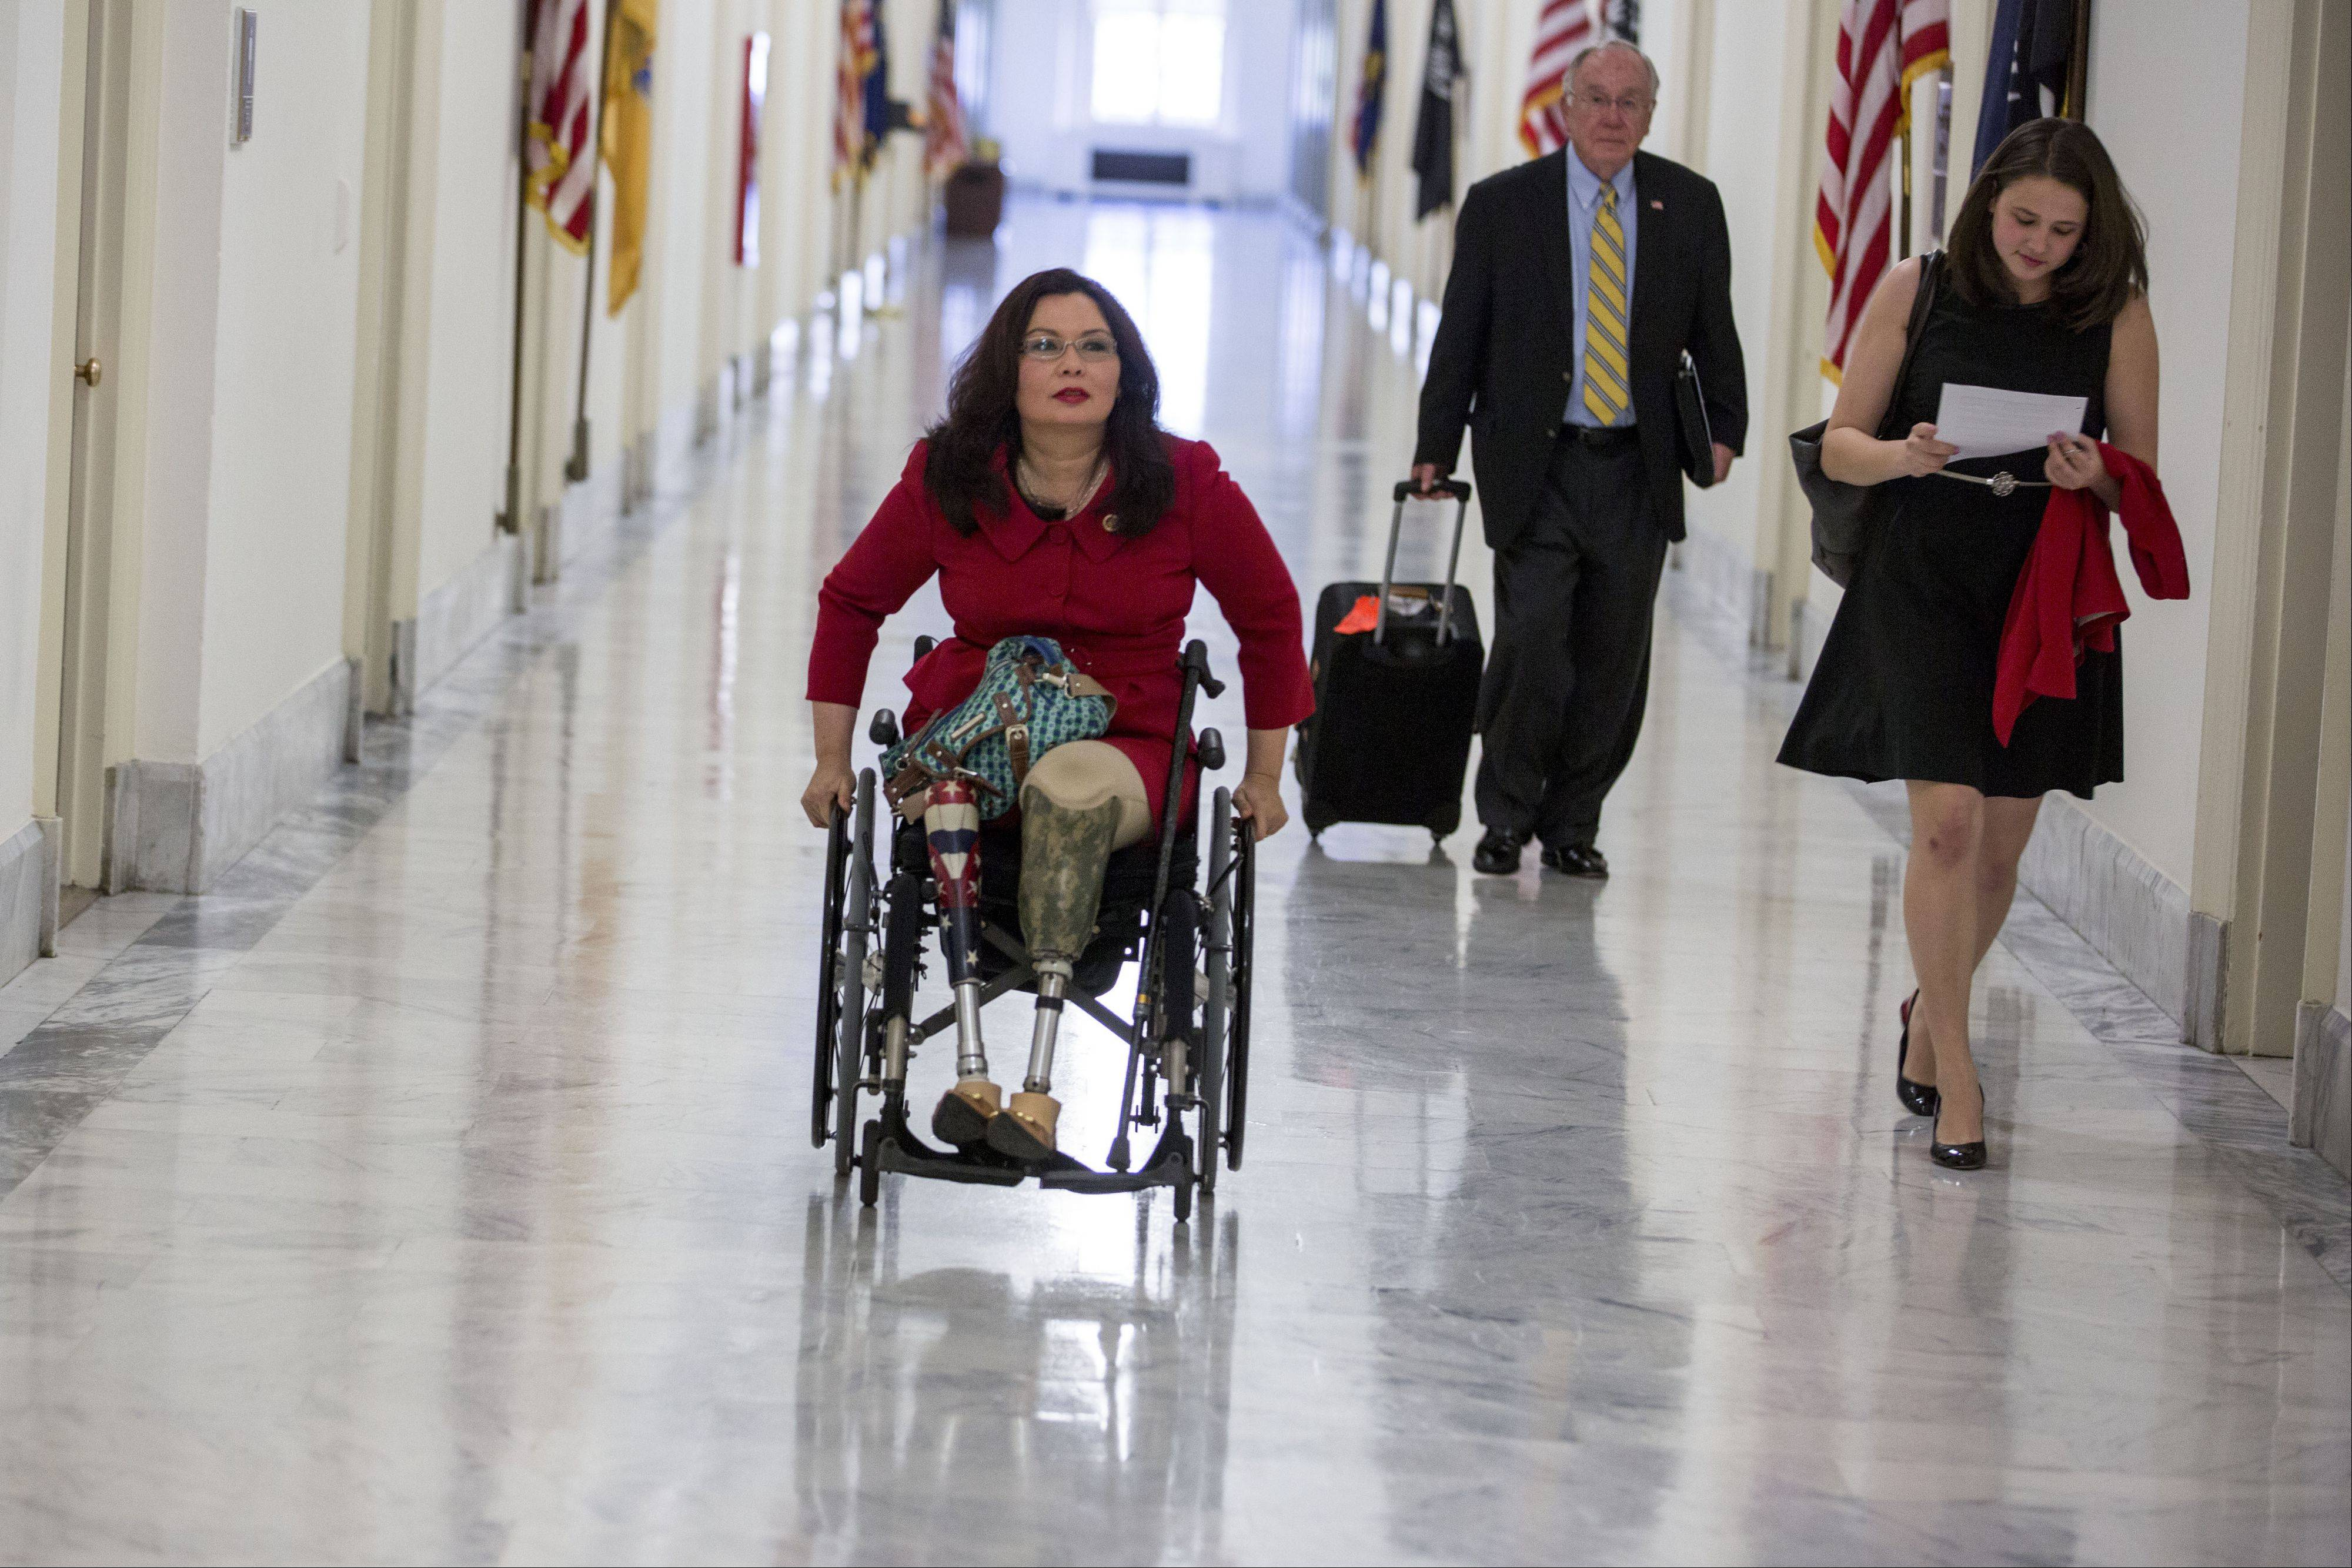 U.S. Rep. Tammy Duckworth of Hoffman Estates wheels down the hall of her office building in Washington. Duckworth, a double-amputee Iraq War veteran, aims to be a voice on veterans' and disability issues.